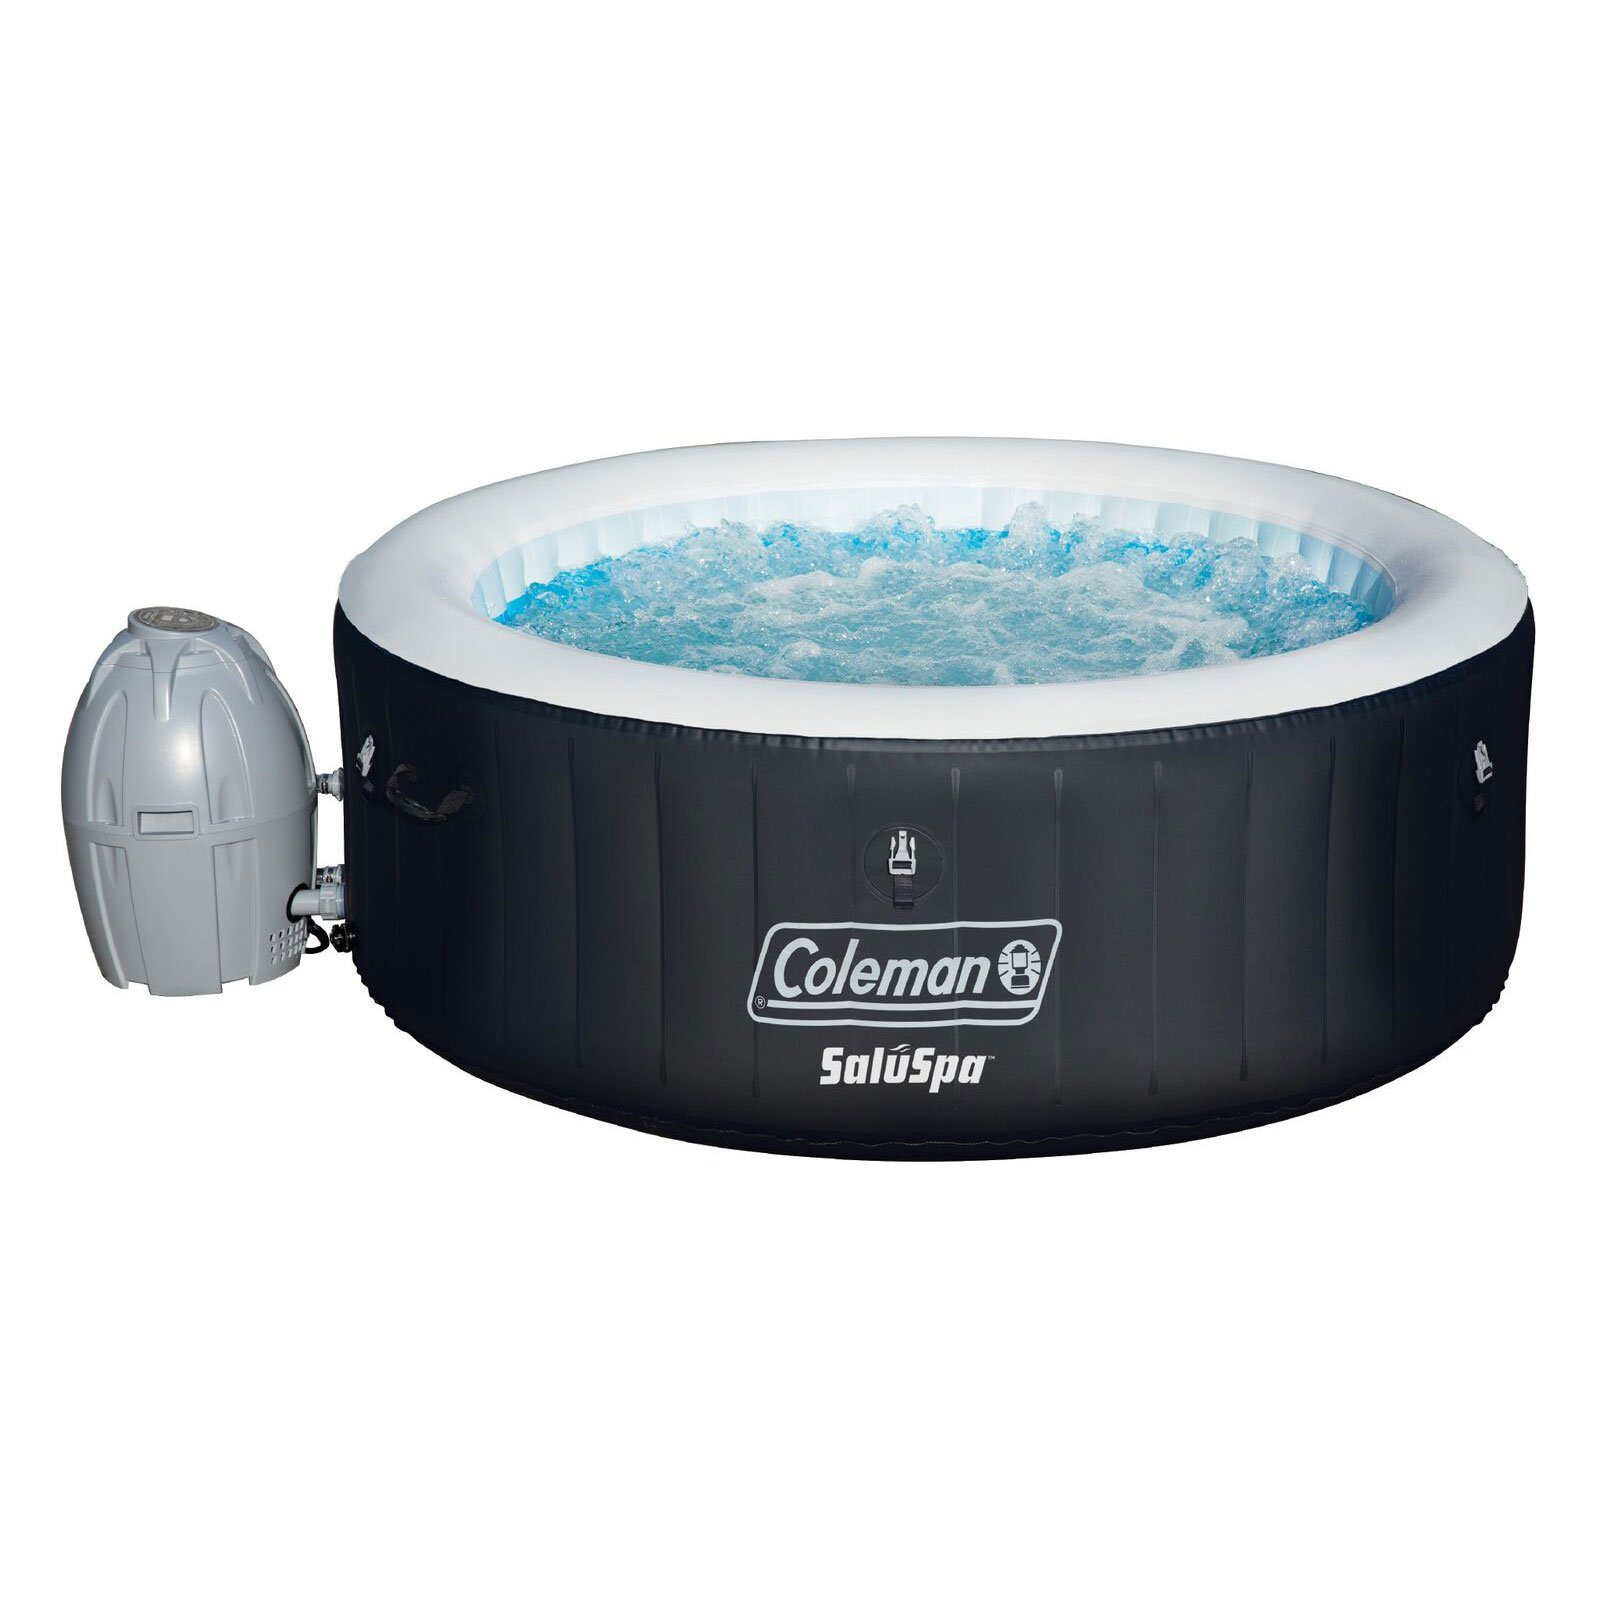 Coleman SaluSpa 4 Person Portable Inflatable Outdoor Spa Hot Tub, Black by Bestway